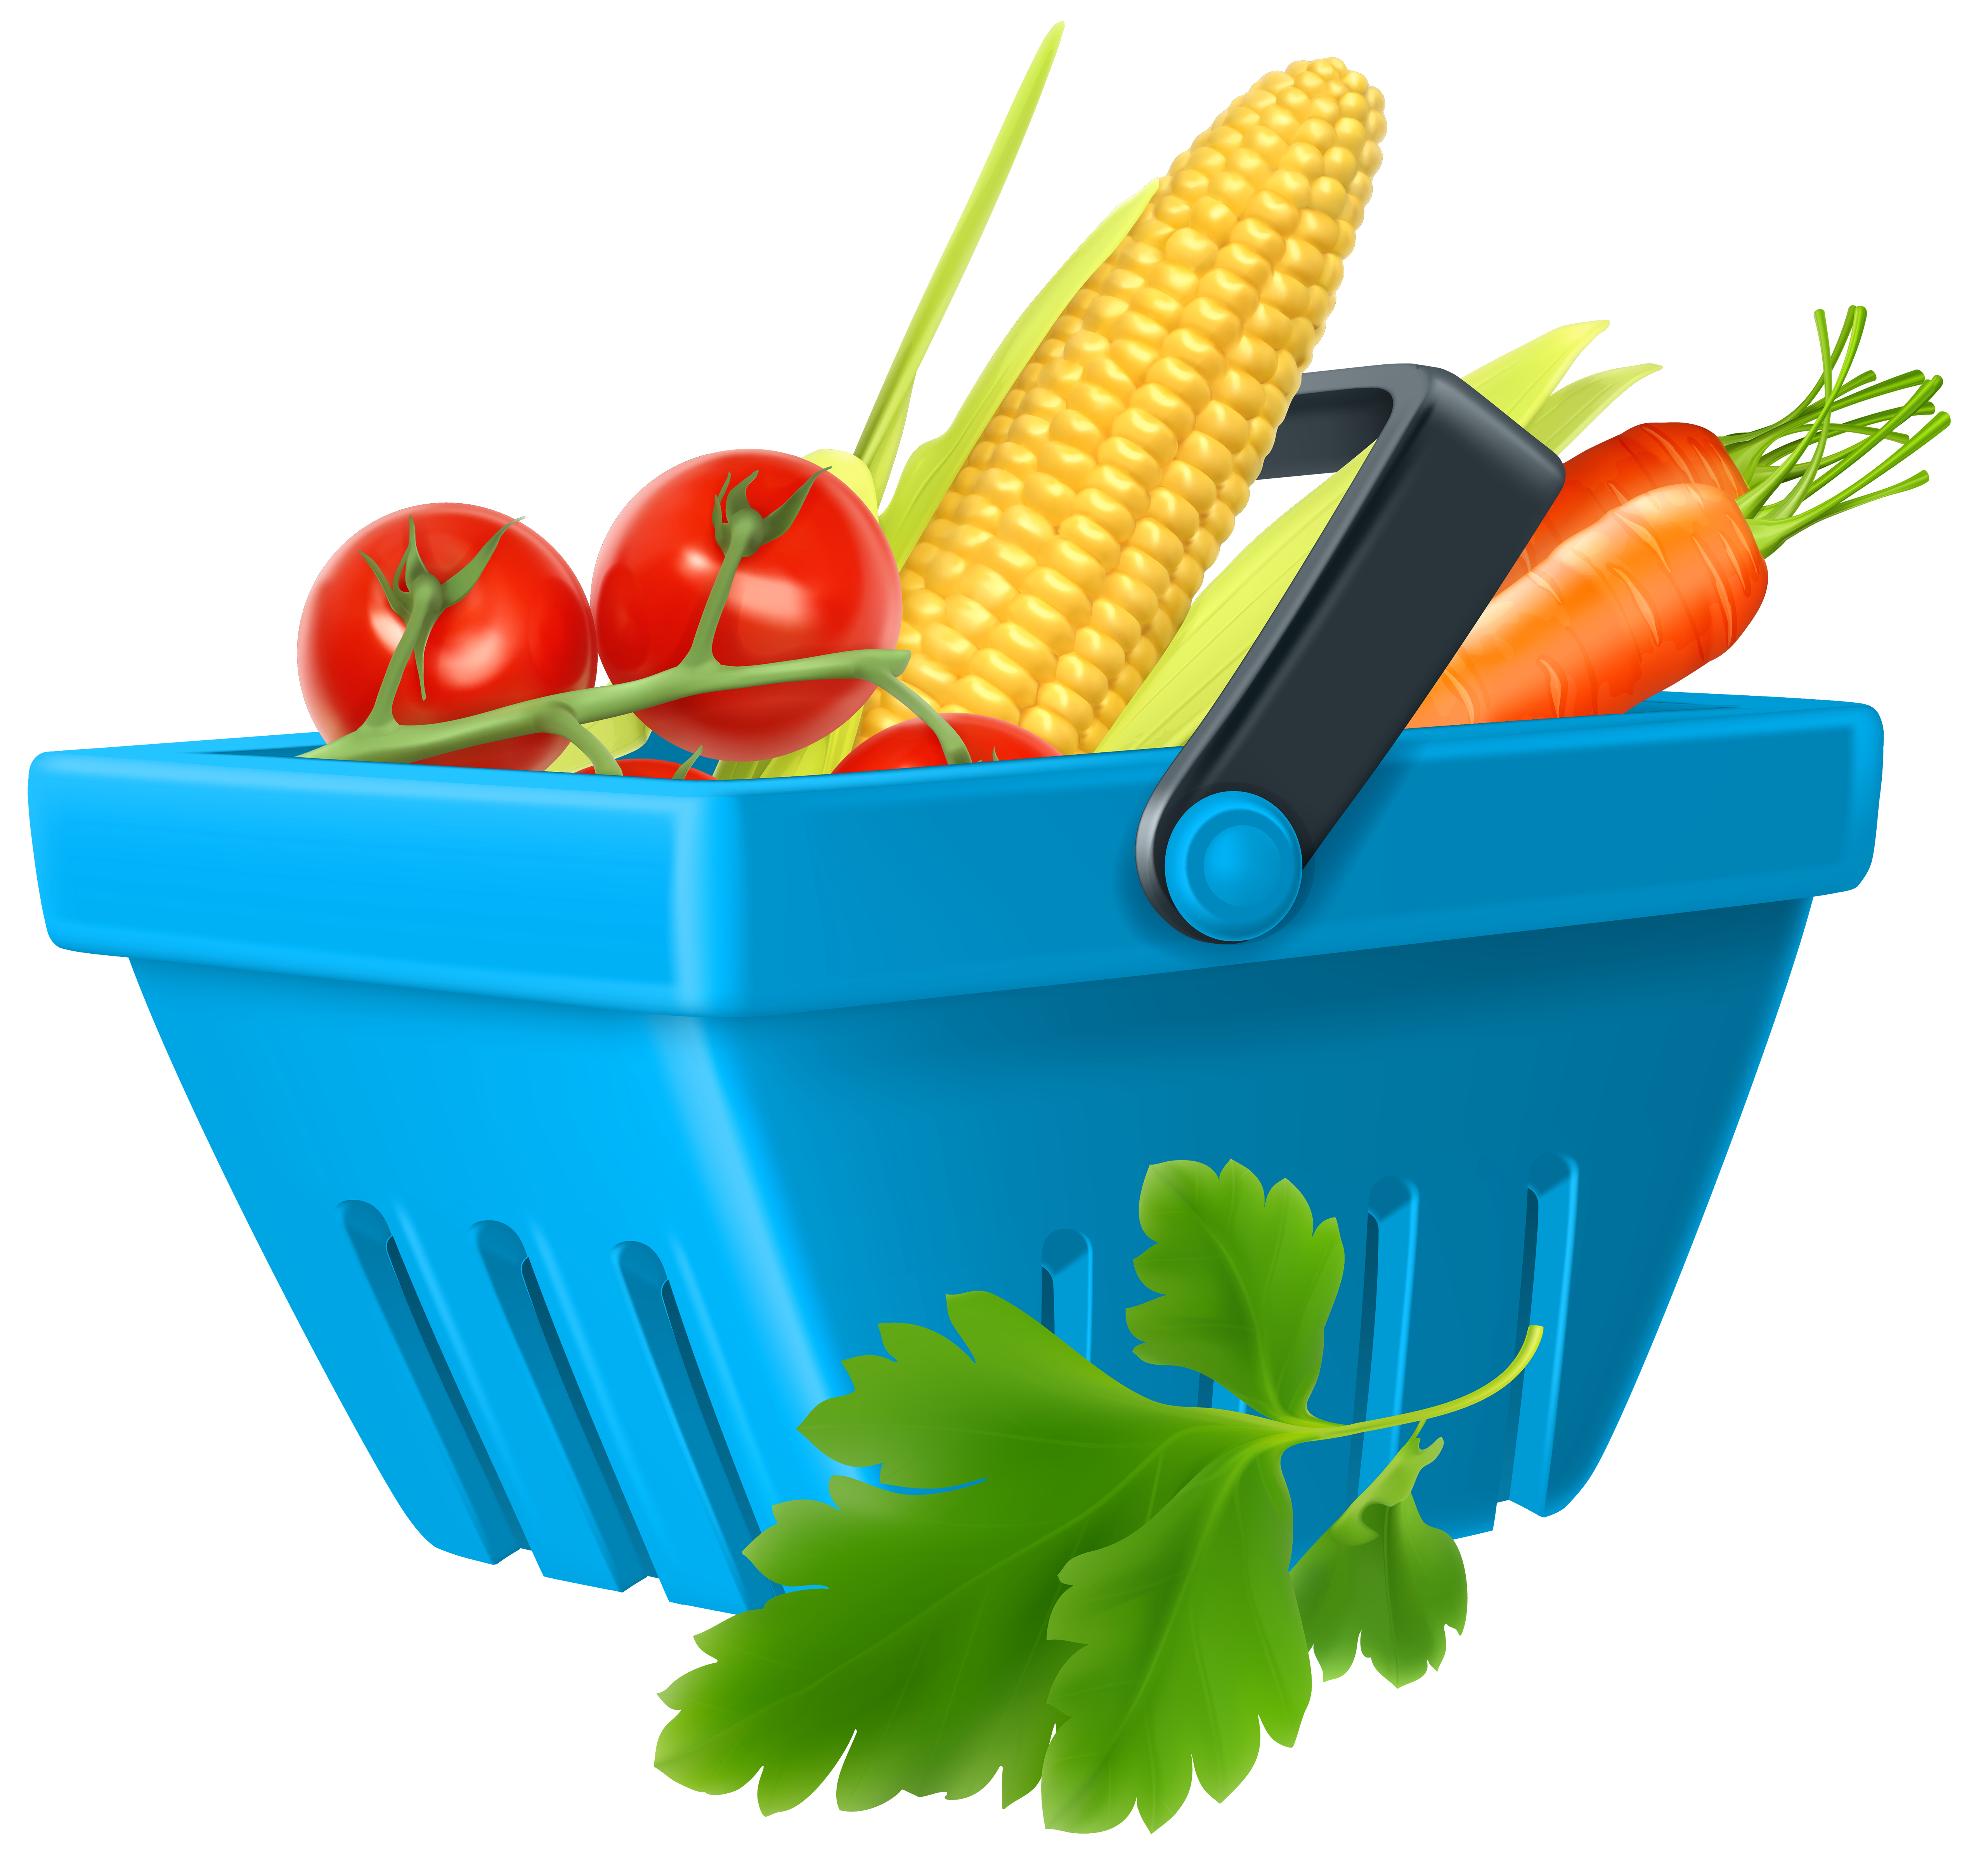 Vegetables clipart png. Basket with best web